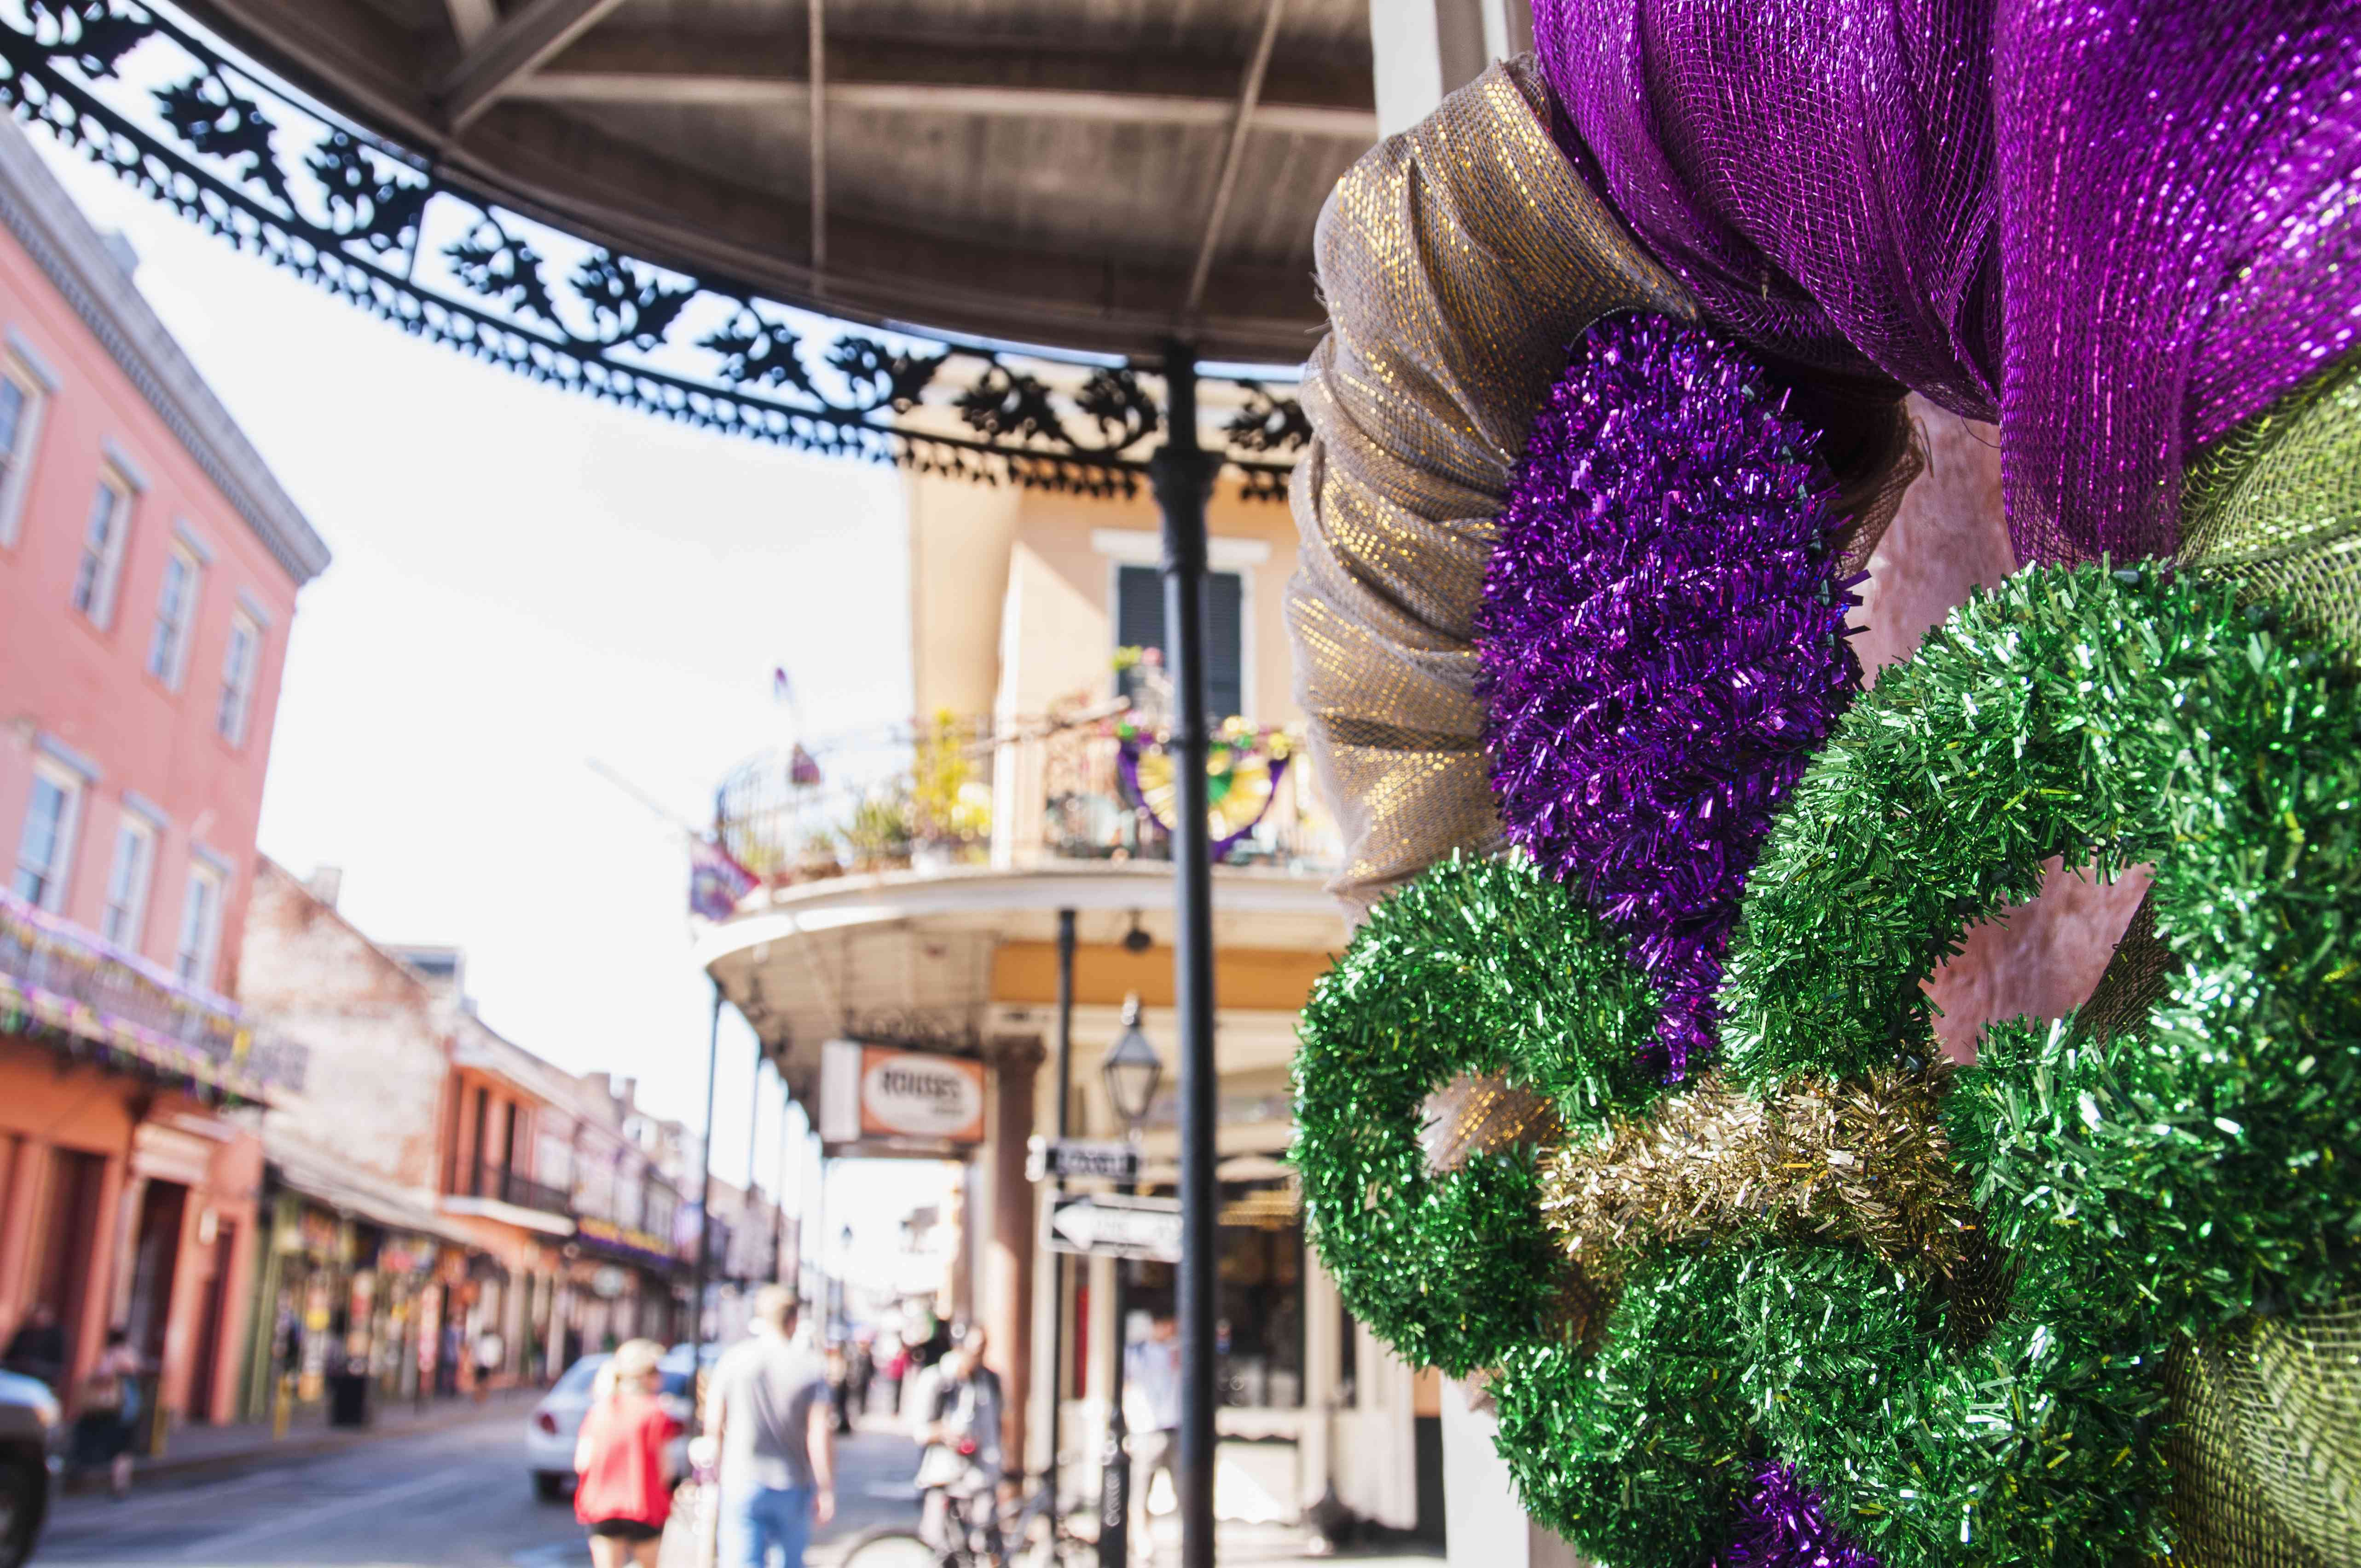 USA, New Orleans, Louisiana, Fleur de Lys and street in background